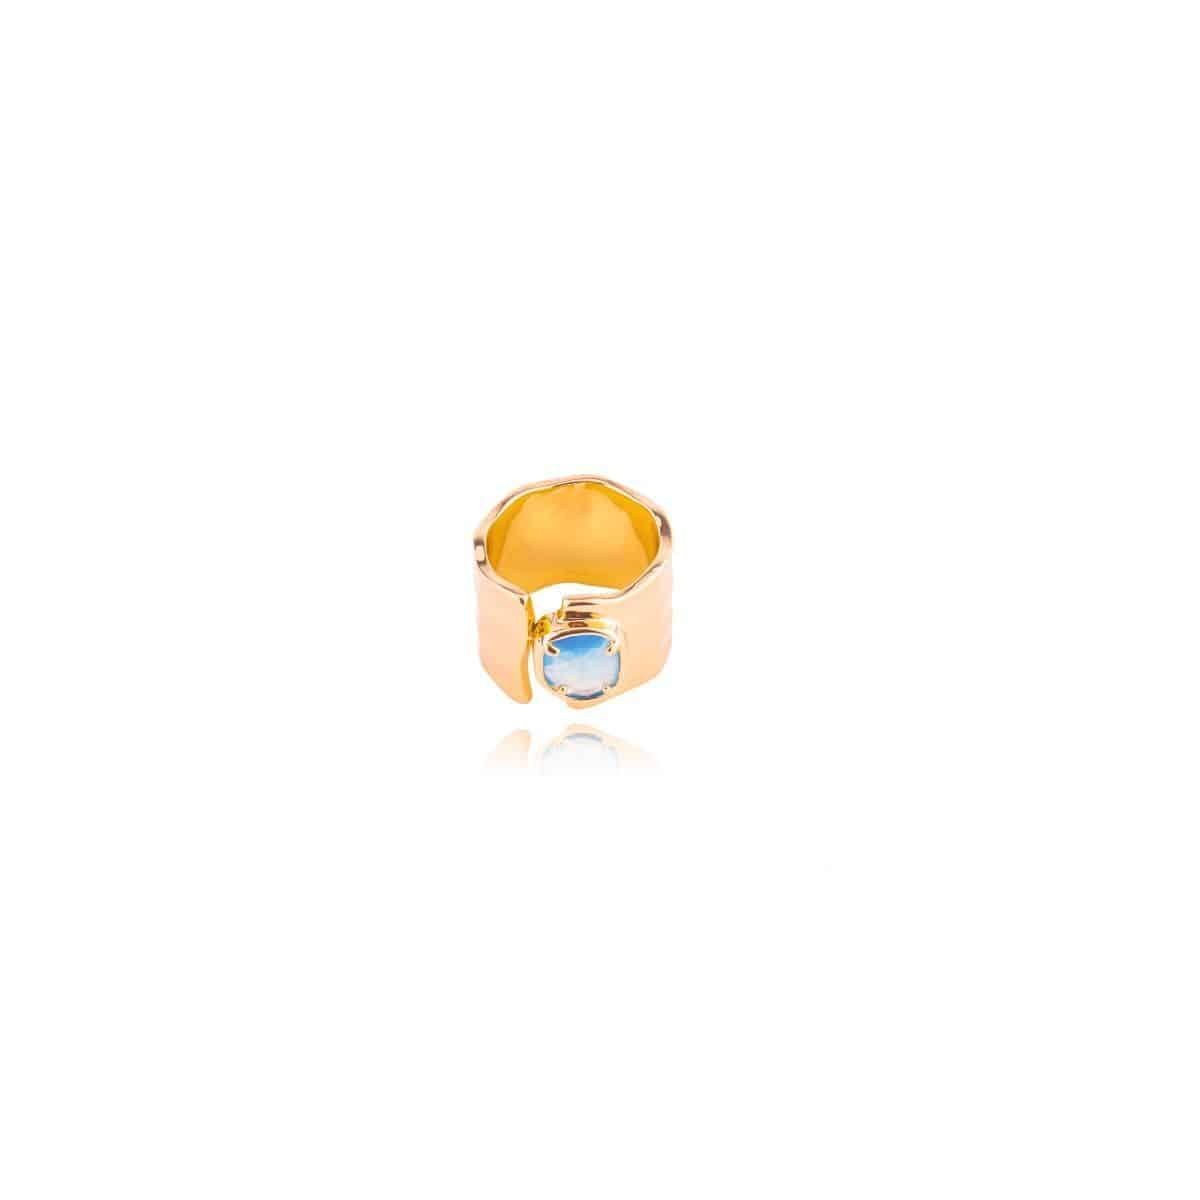 Farigola ring, 8k gold plated and with a natural blue cat's eye stone